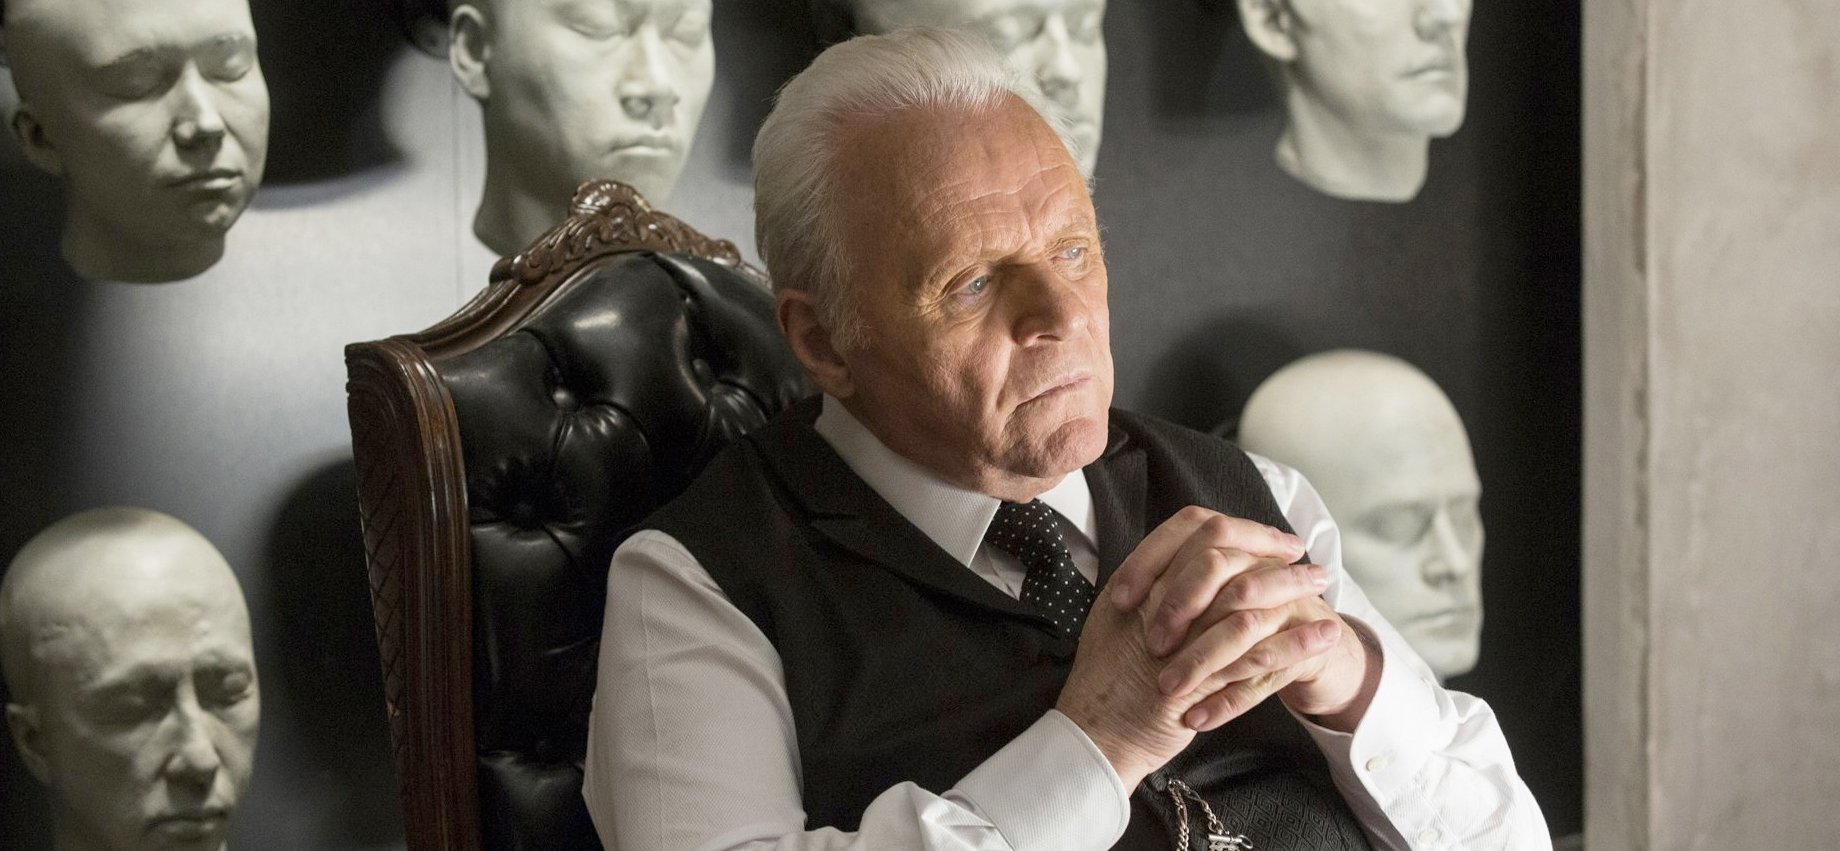 westworld-anthonyhopkins-heads.jpg